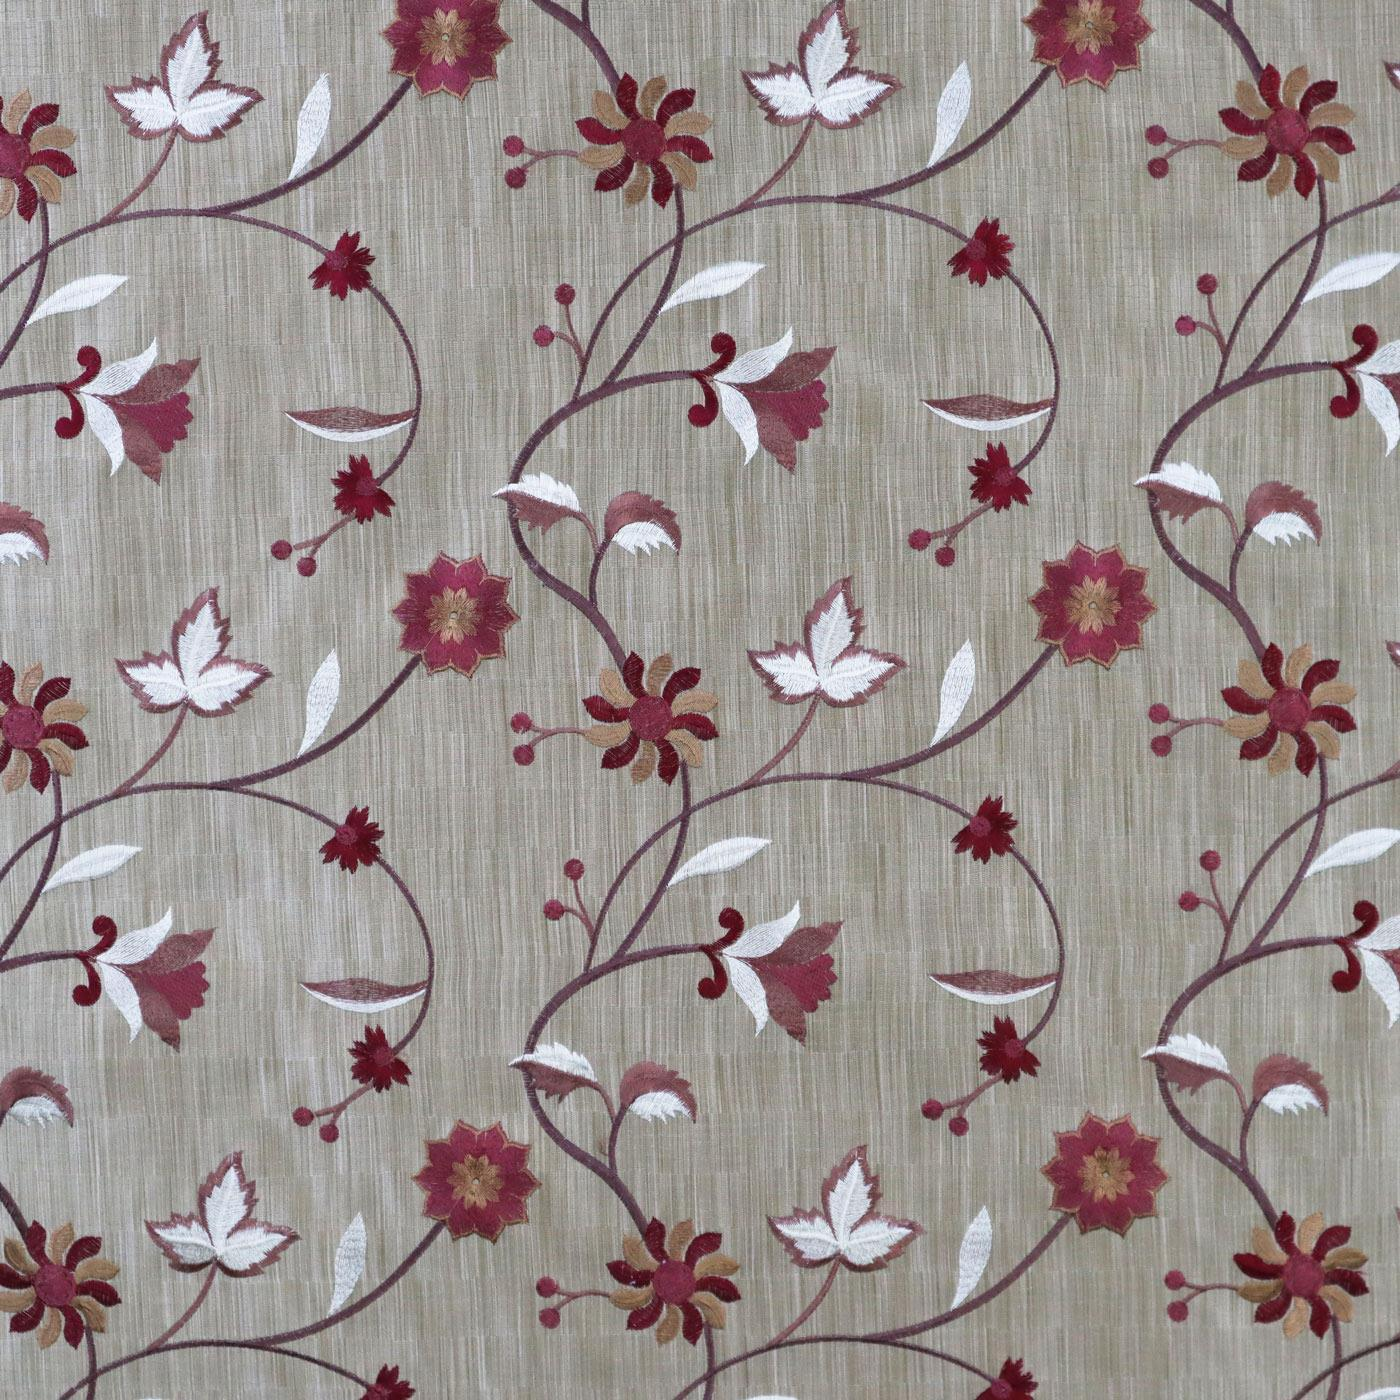 Glitz 4912 40 Berry Made To Measure Roman Blind -  - Ideal Textiles